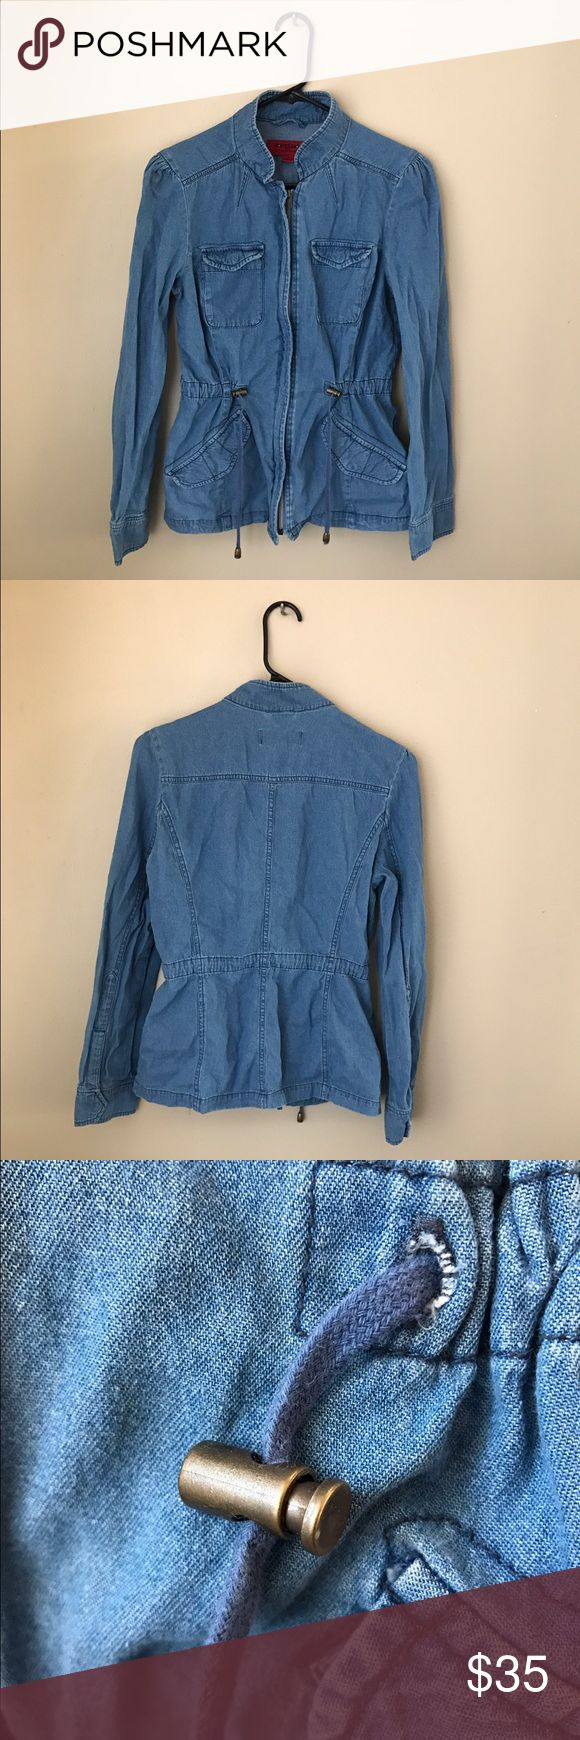 Adjustable Waist Denim Zip Up Jacket Women's denim zip up jacket! Size medium. Adjustable fit at the waist for a slimming look. Perfect look for the fall/winter. Only worn once! Jackets & Coats